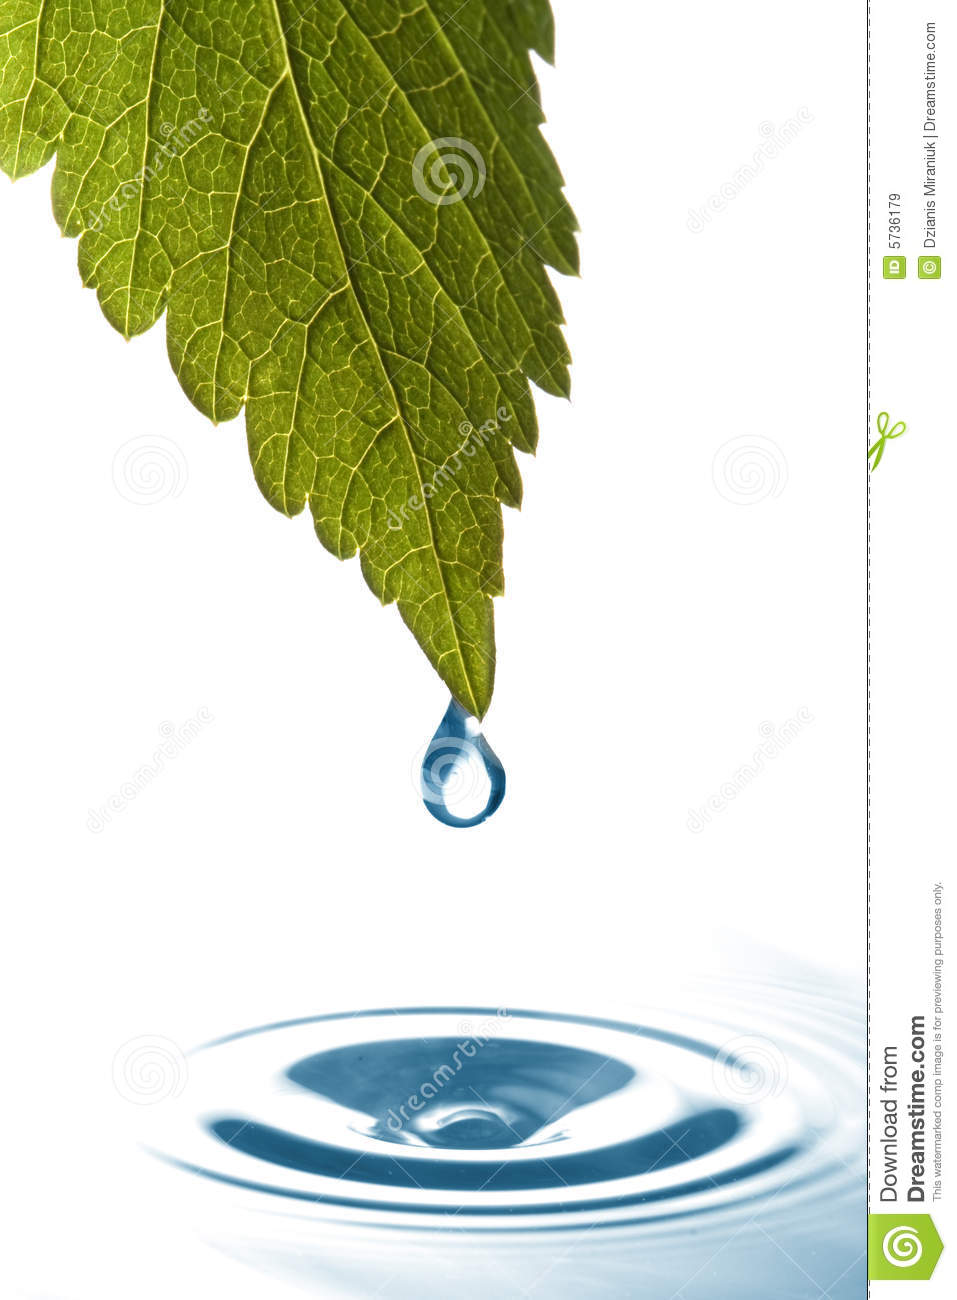 Water Dripping Of A Leaf Royalty Free Stock Images  Image. Decoration Ideas Living Room. Simple Decoration Ideas For Living Room. Small Living Room Side Tables. Candice Tells All Living Room. Designer Wallpaper For Living Room. Living Room Walls Decor. Living Room Ideas Shabby Chic. 1970s Living Room